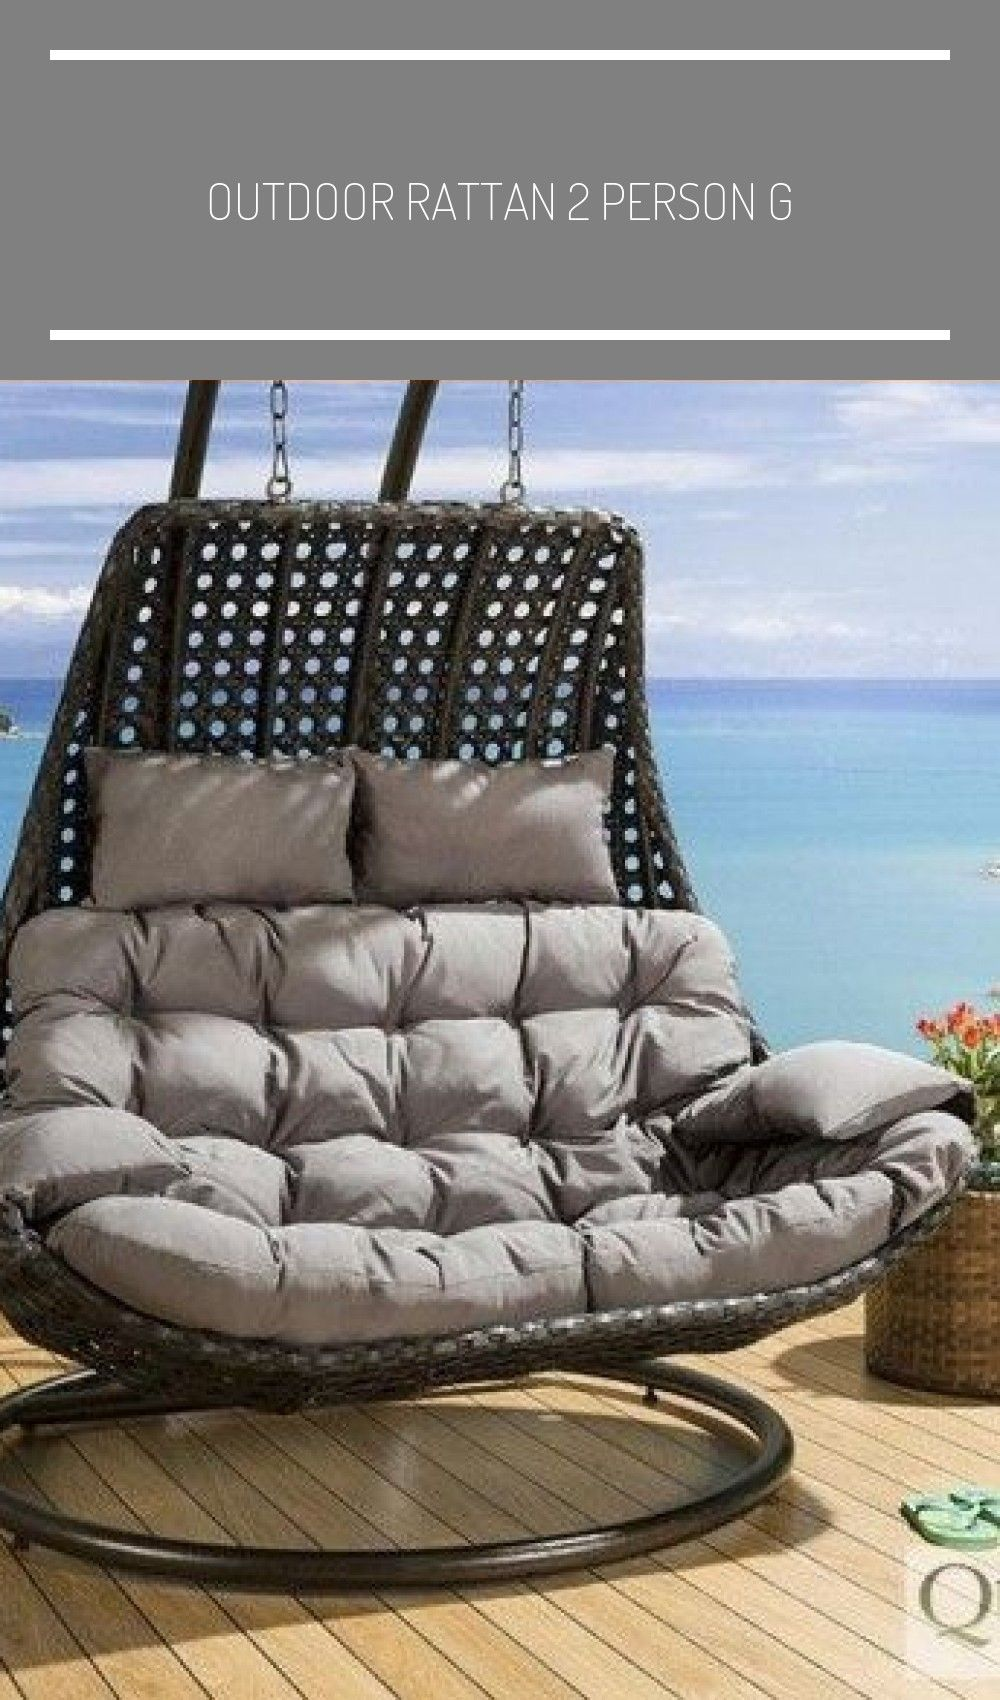 Outdoor Rattan 2 Person G